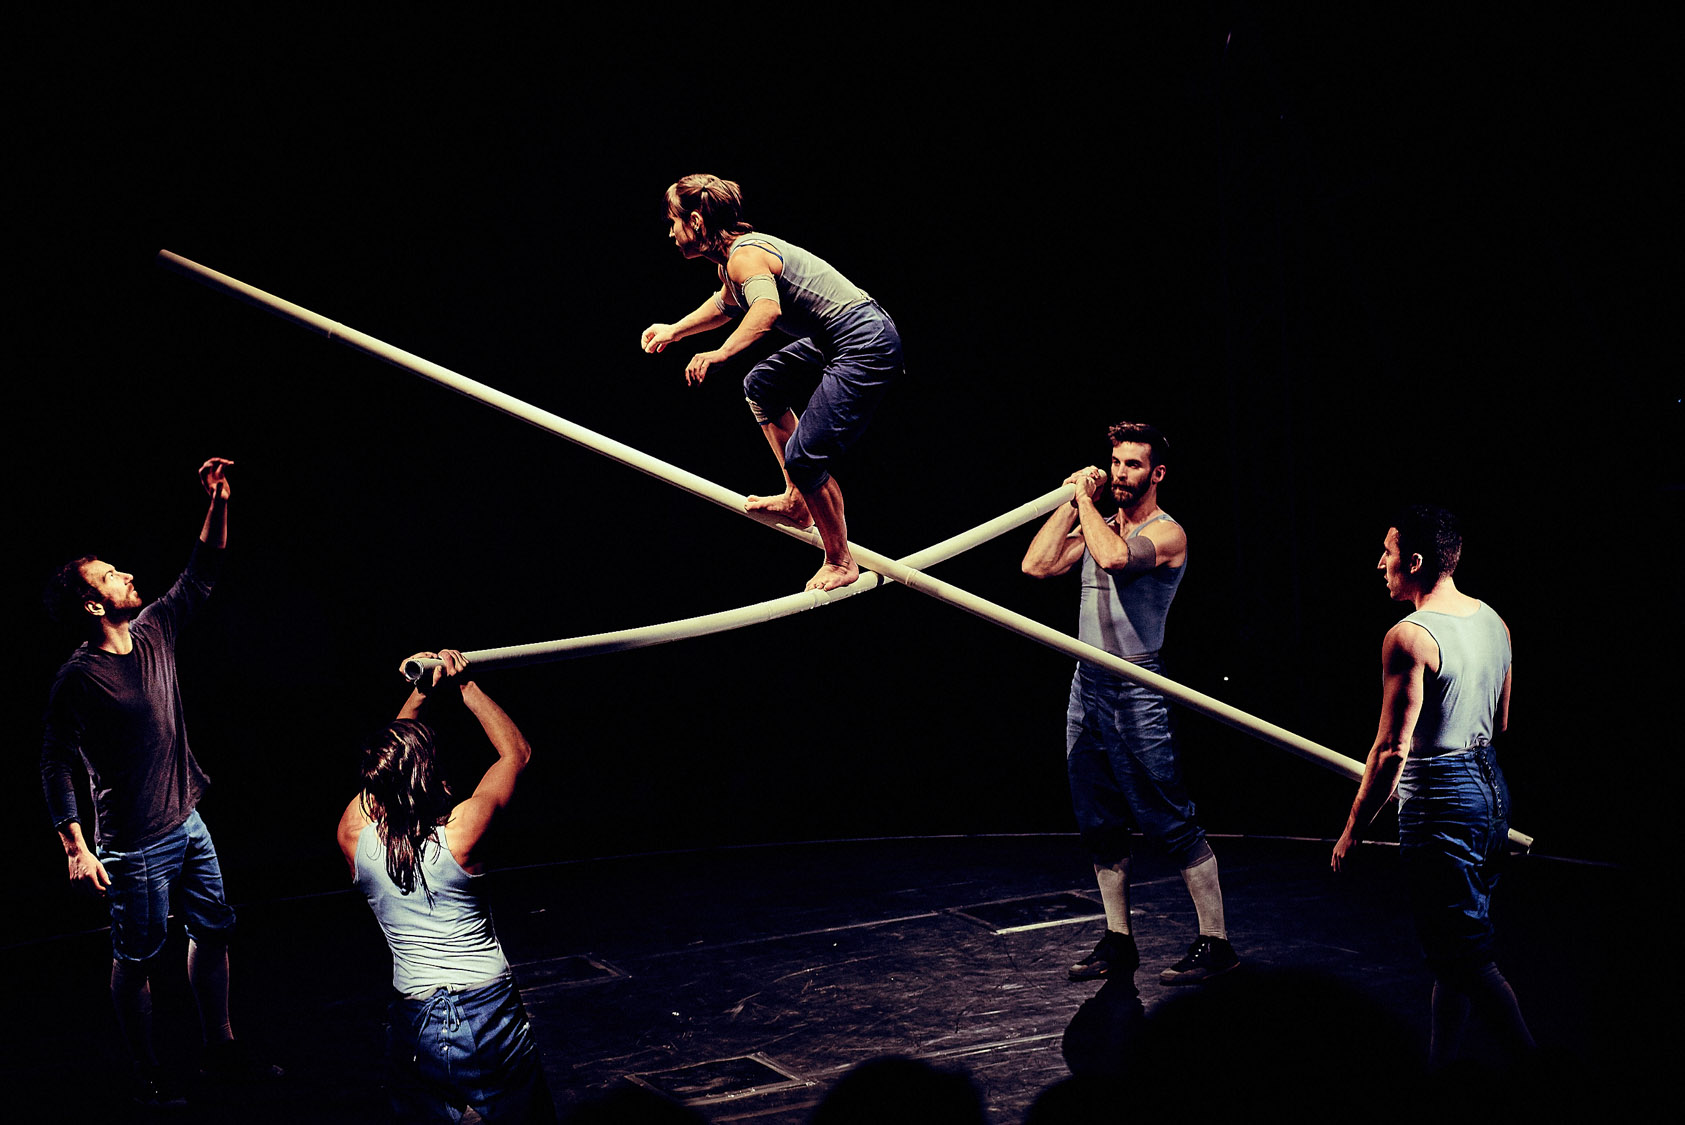 Ockham's Razor, Tipping Point, Manchester, Theatre, TotalNtertainment, Dance